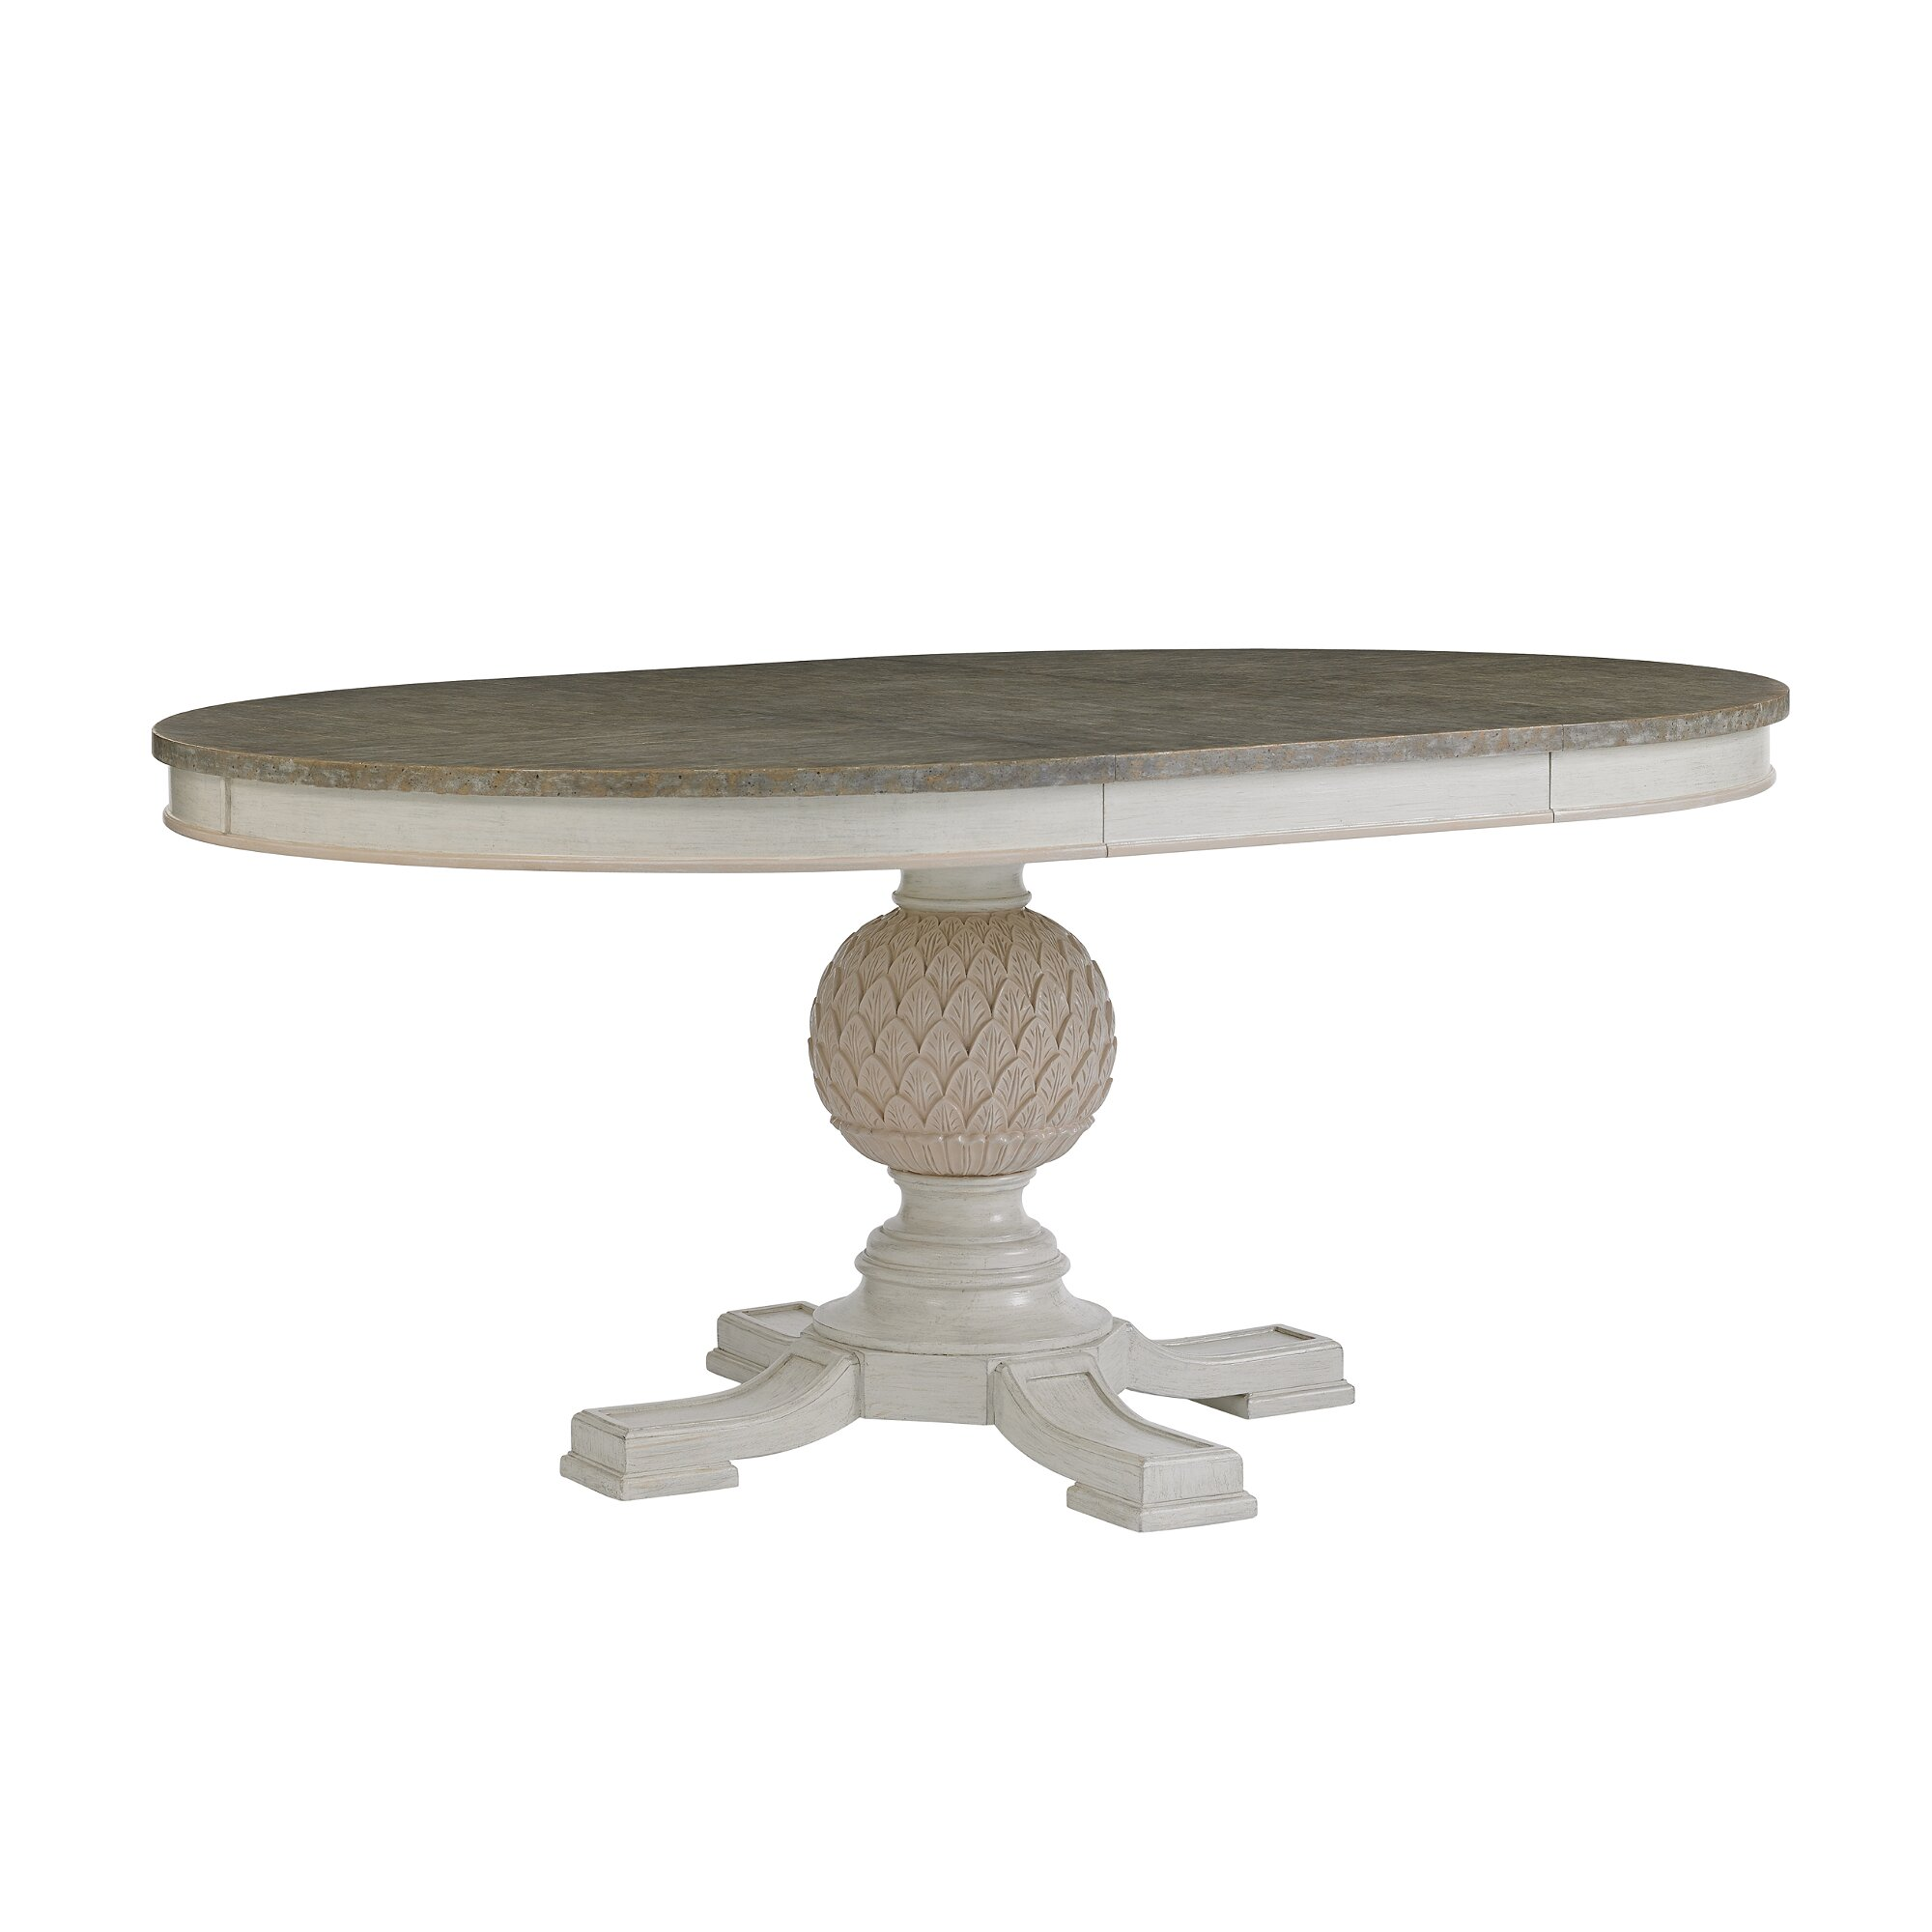 Oval Kitchen Table Pedestal Oval Pedestal Dining Table With Two Leaves Free Image